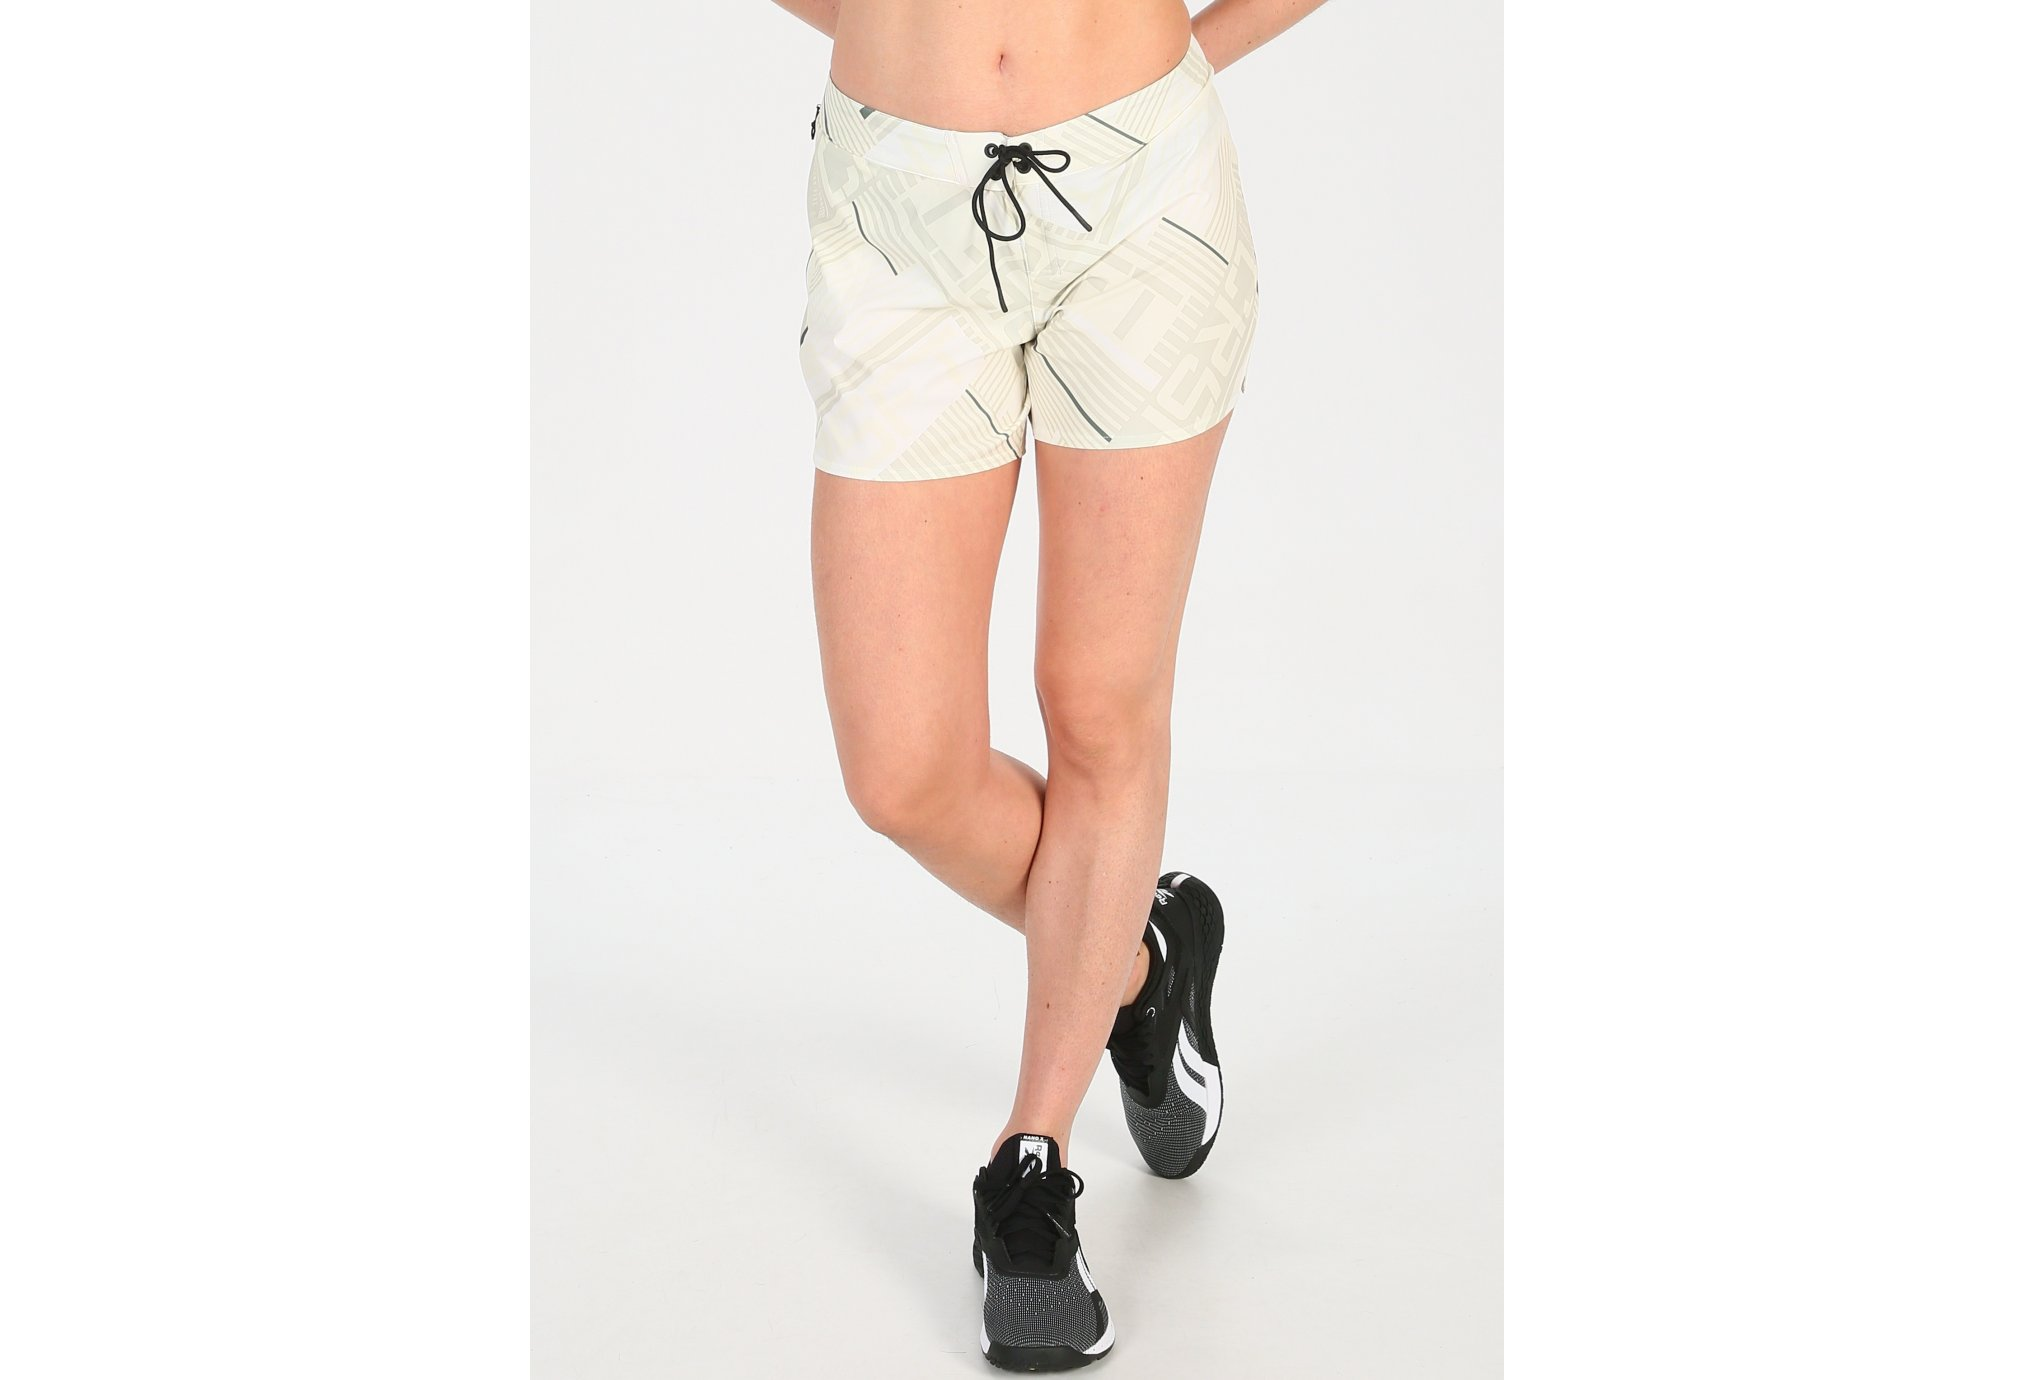 Reebok Short Crossfit Knees Out W Diététique Vêtements femme